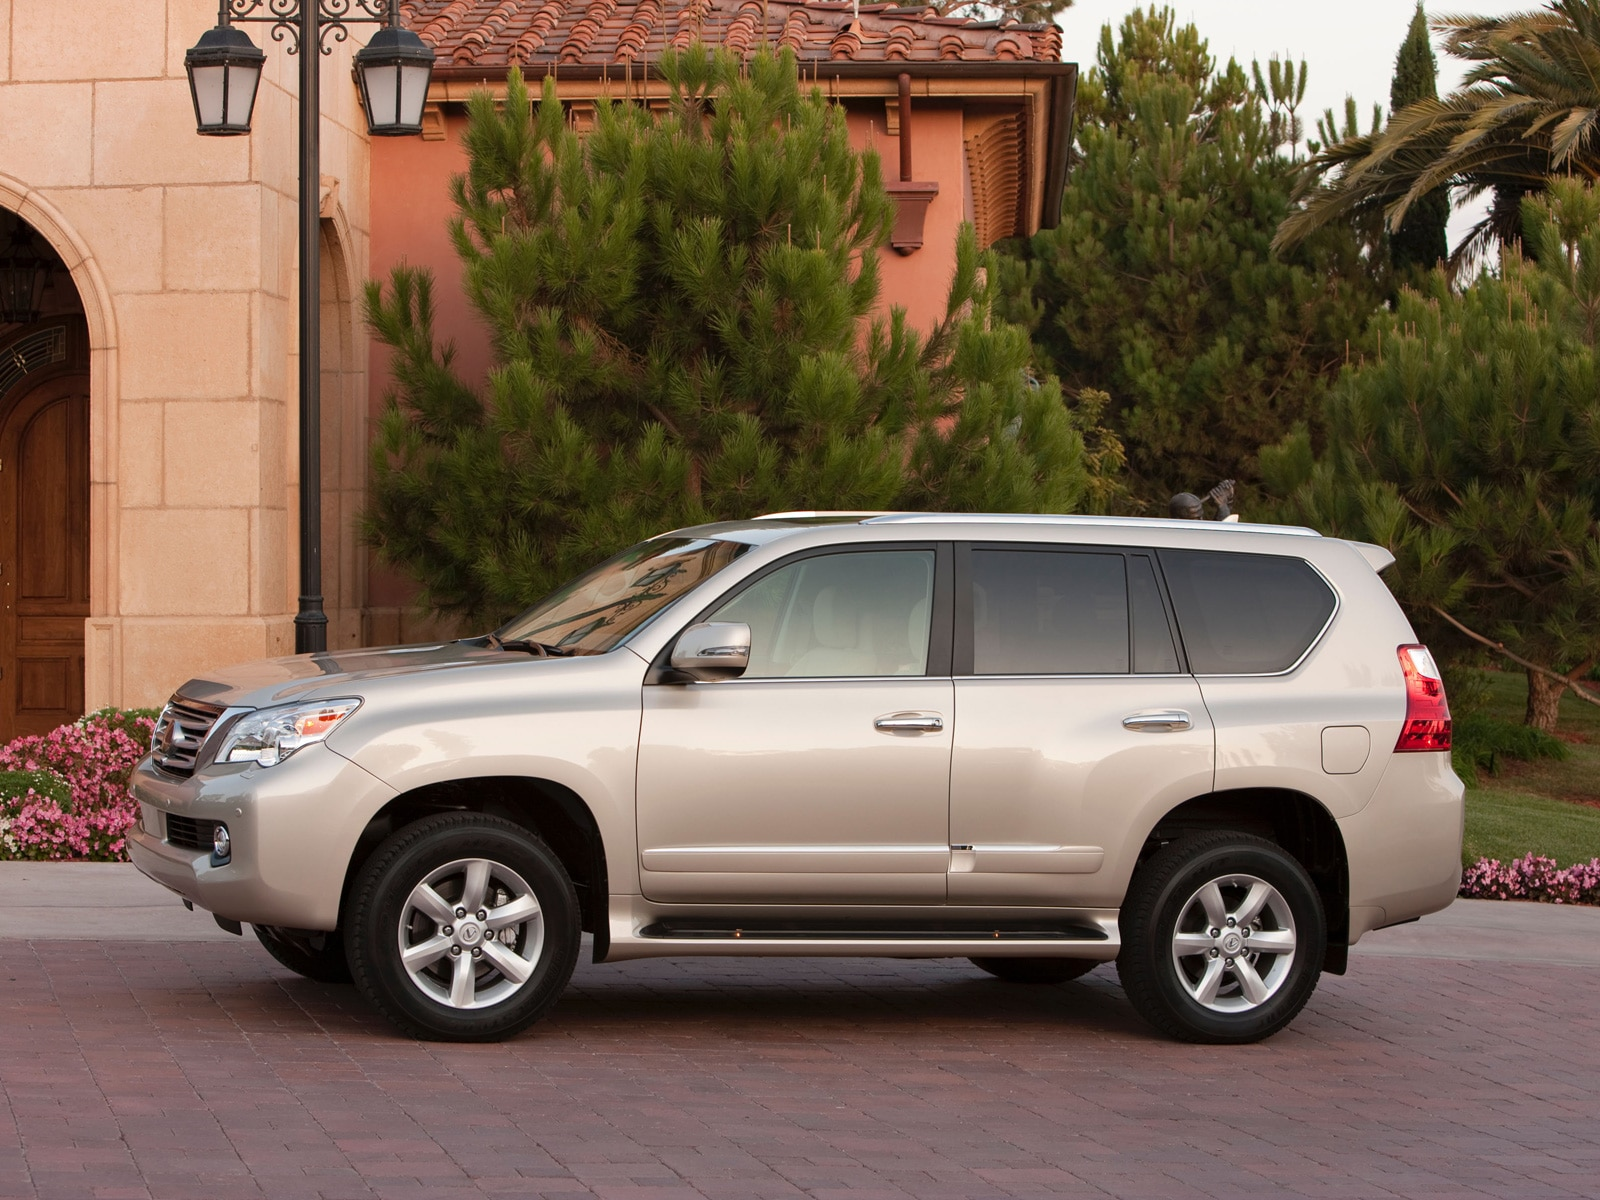 review school lexus old and gx rating star proud reviews